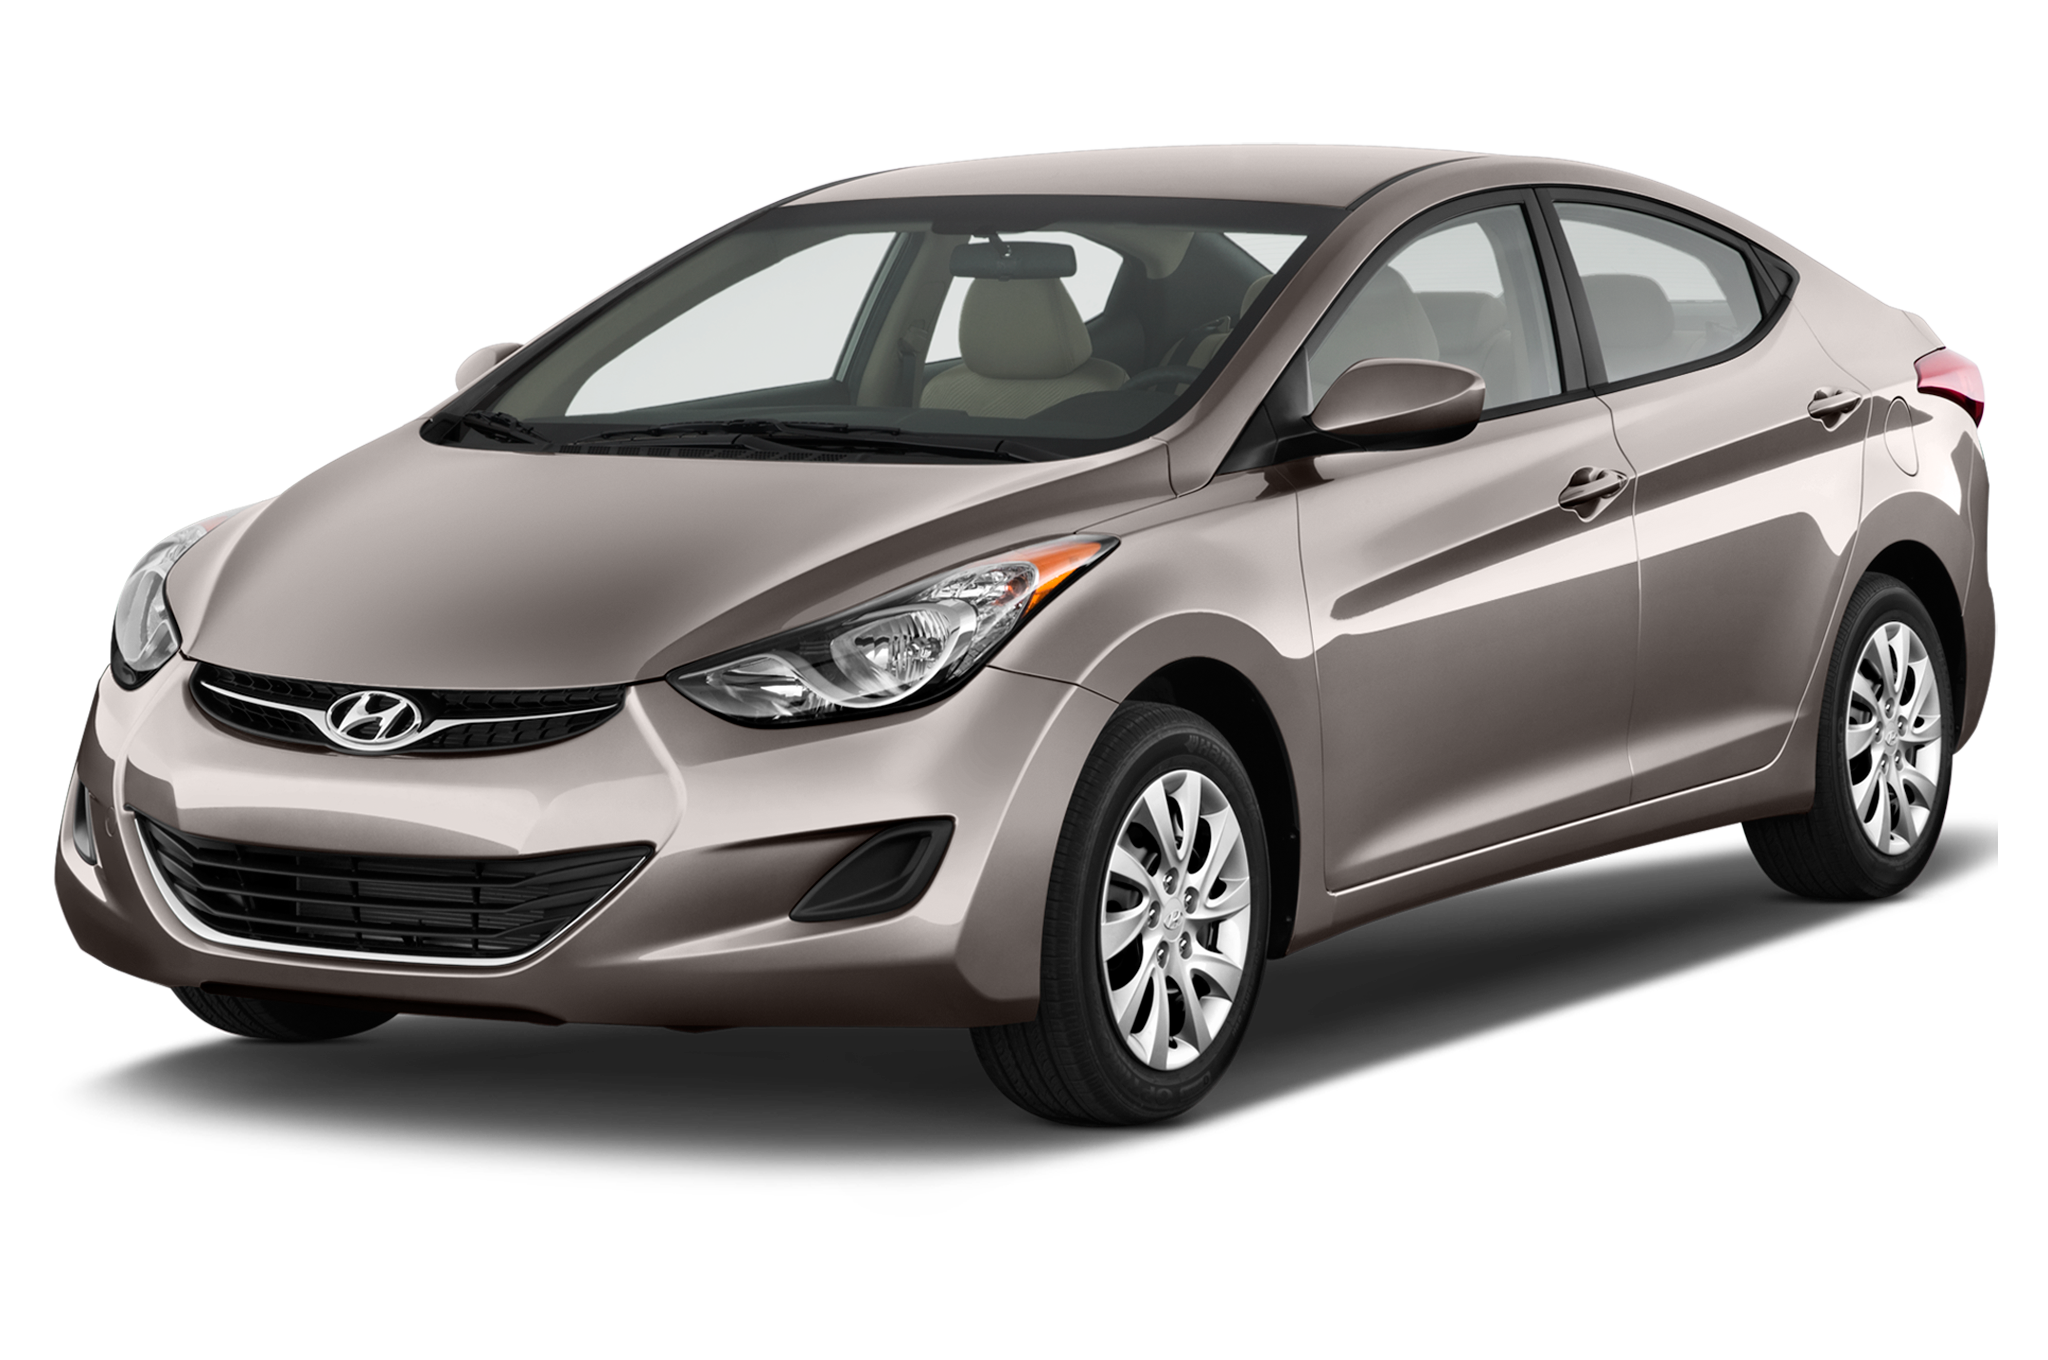 Hyundai Elantra Reviews And Rating Motor Trend - Hyundai accent invoice price